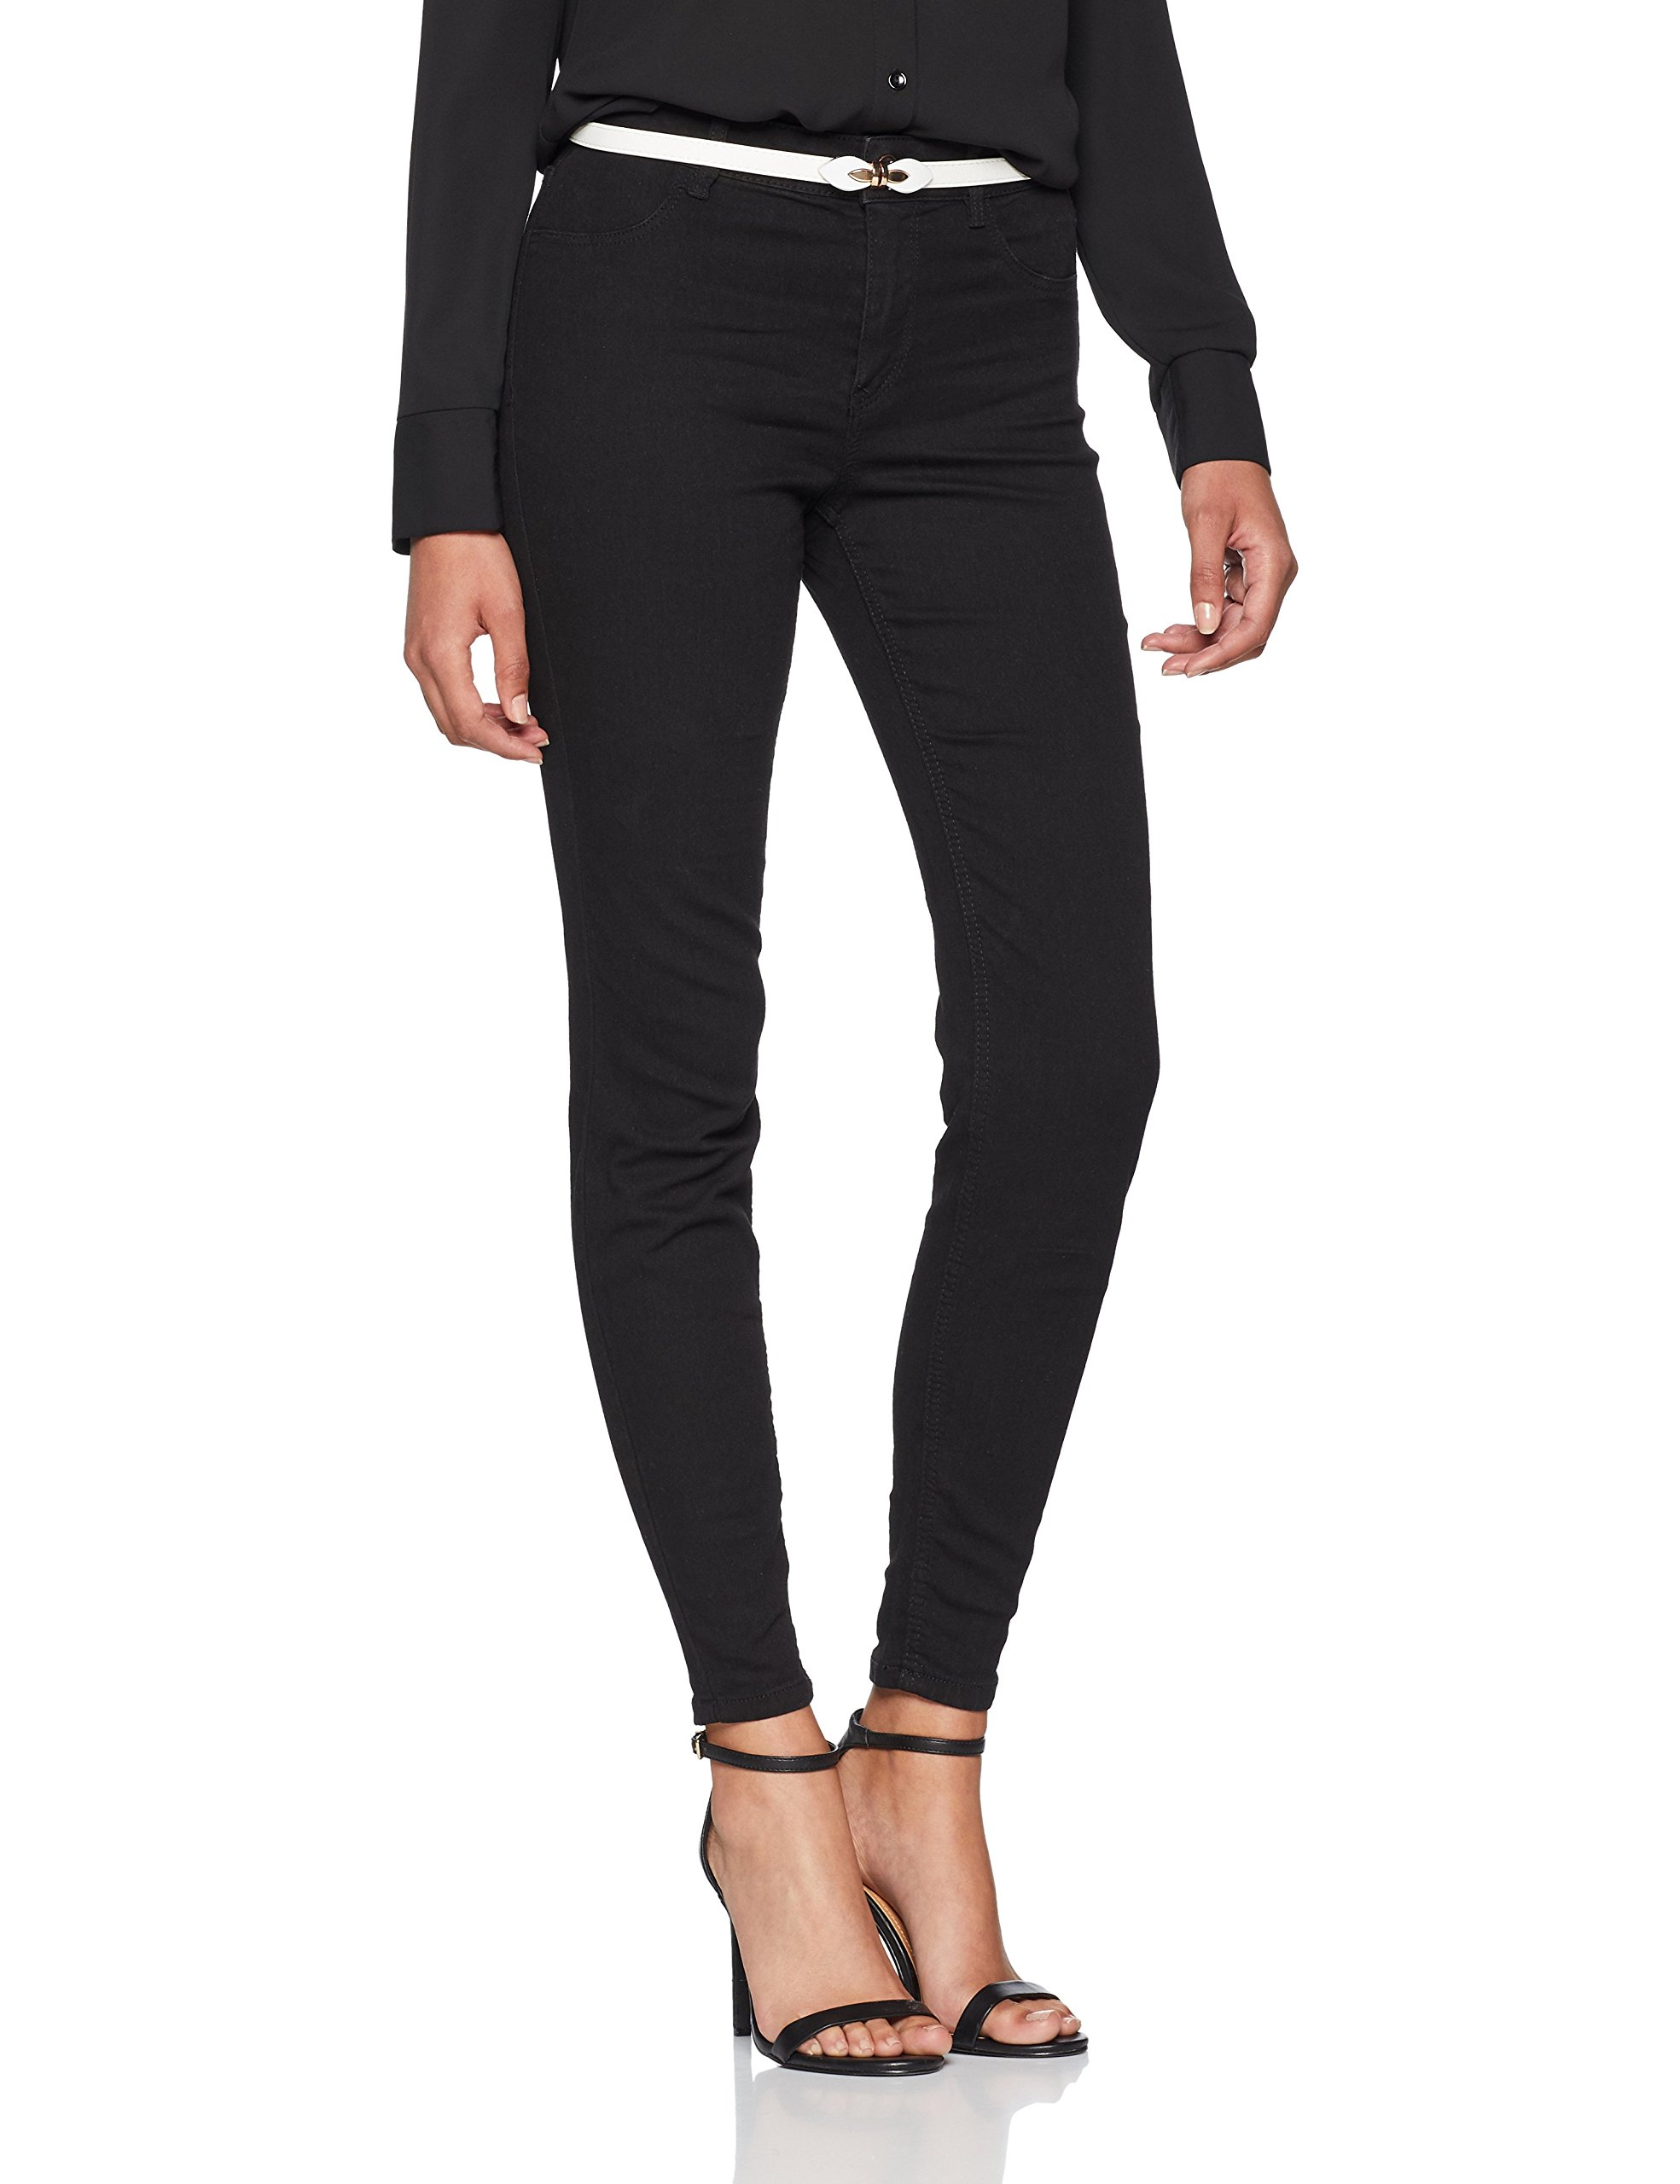 New Look Women's Skinny Jeans 60